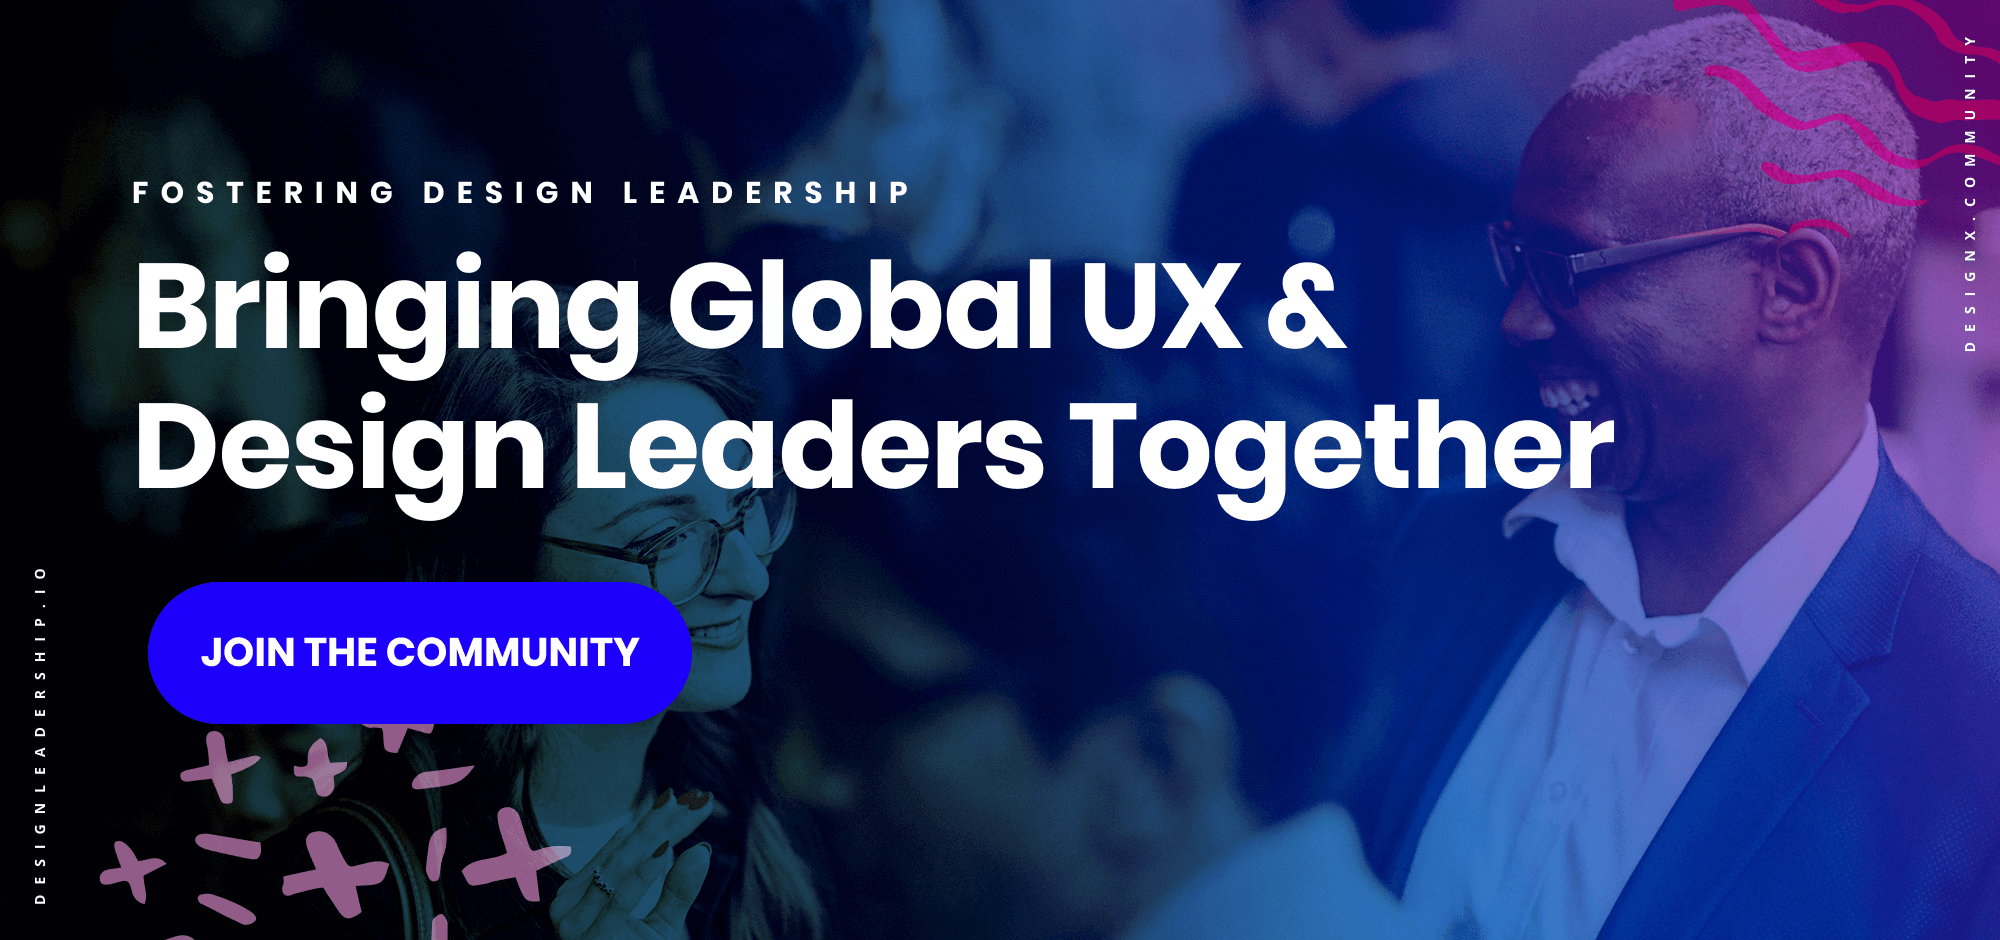 Bringing Global UX & Design Leaders Together - Join the community on the Design Leadership Slack group